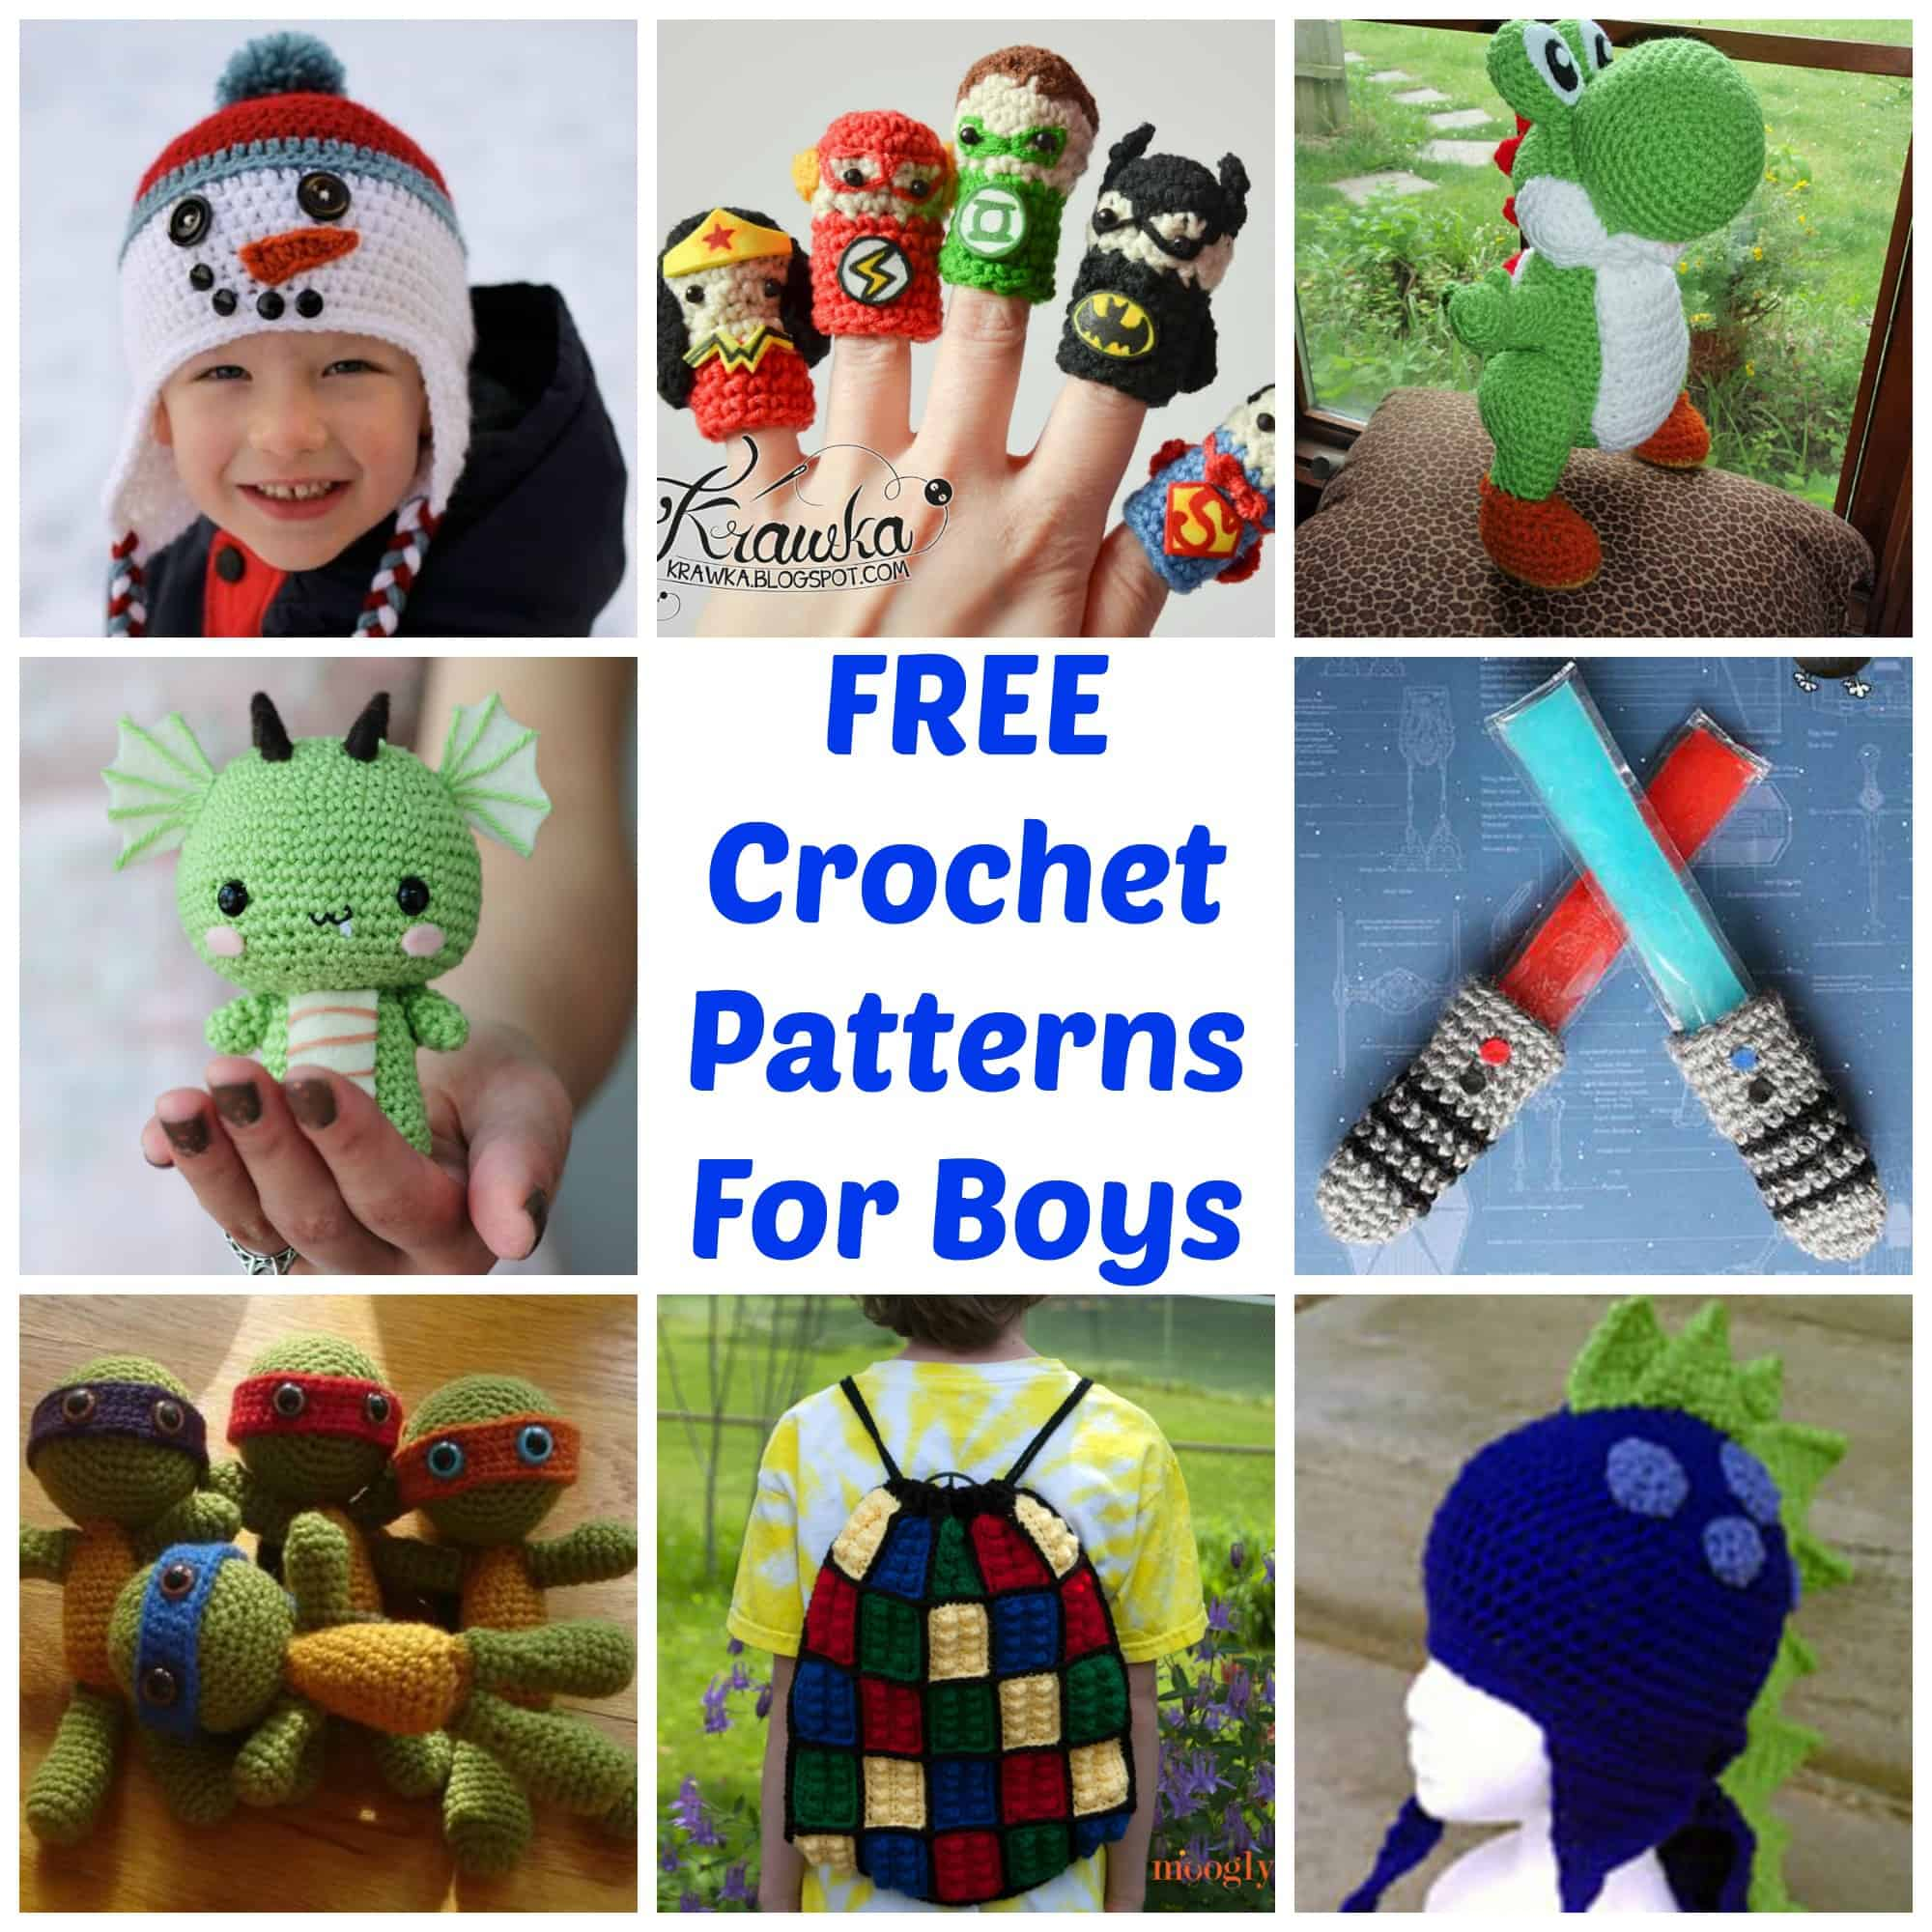 HUGE List of Free Crochet Patterns For Boys via LittleMissKate.ca